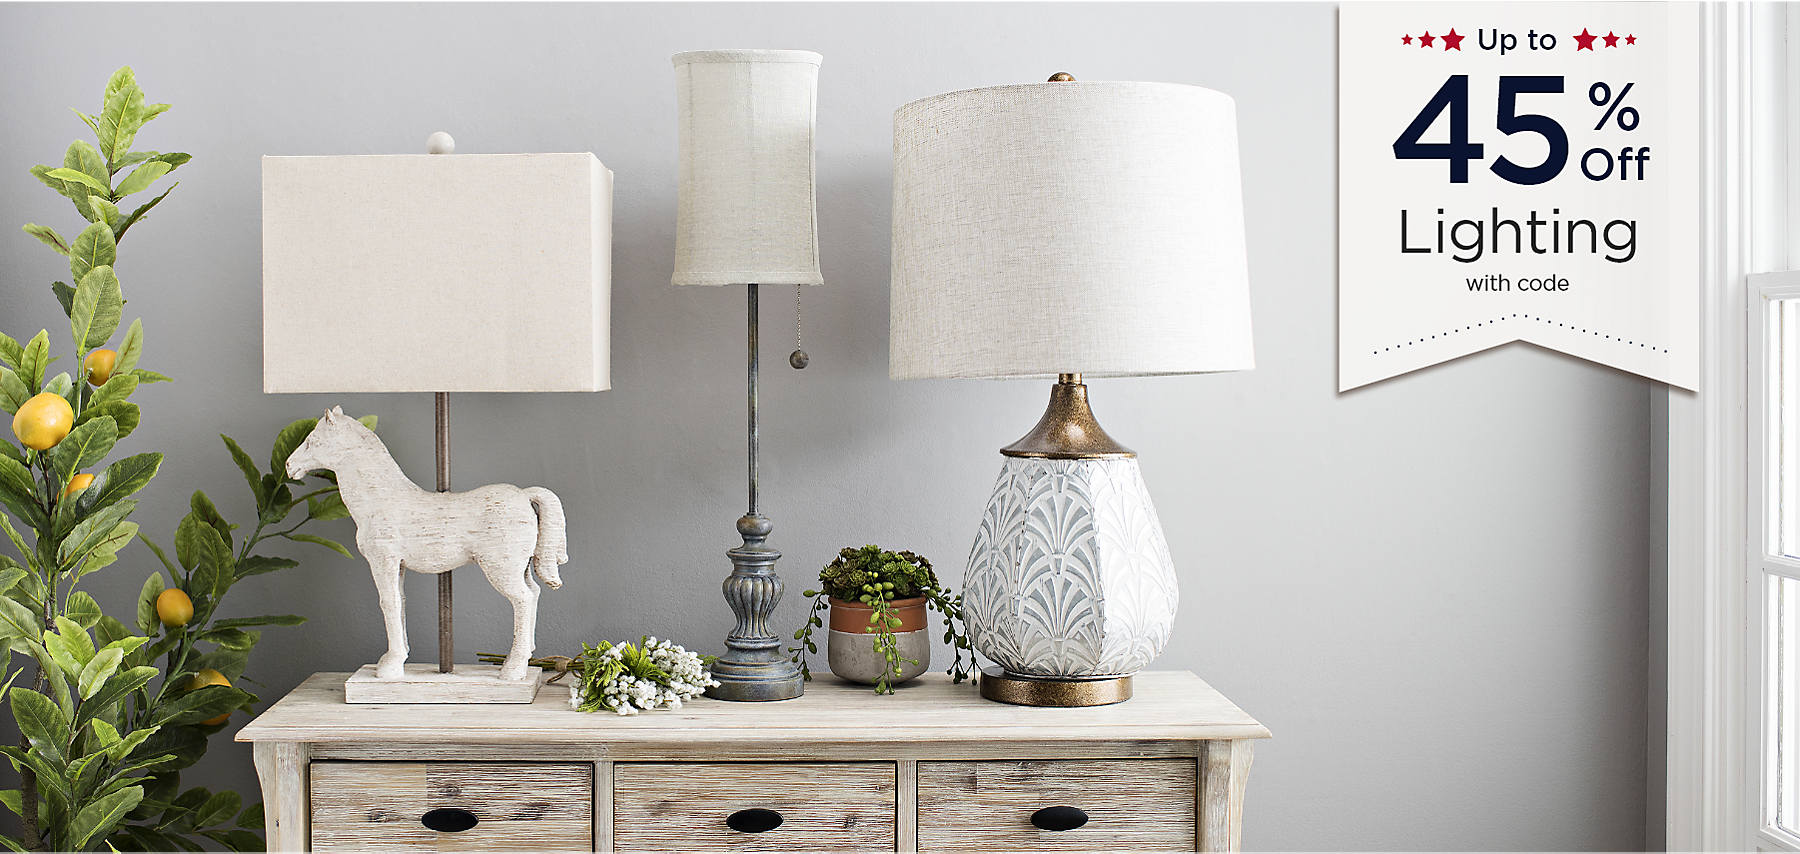 Up to 45% Off Lighting with code